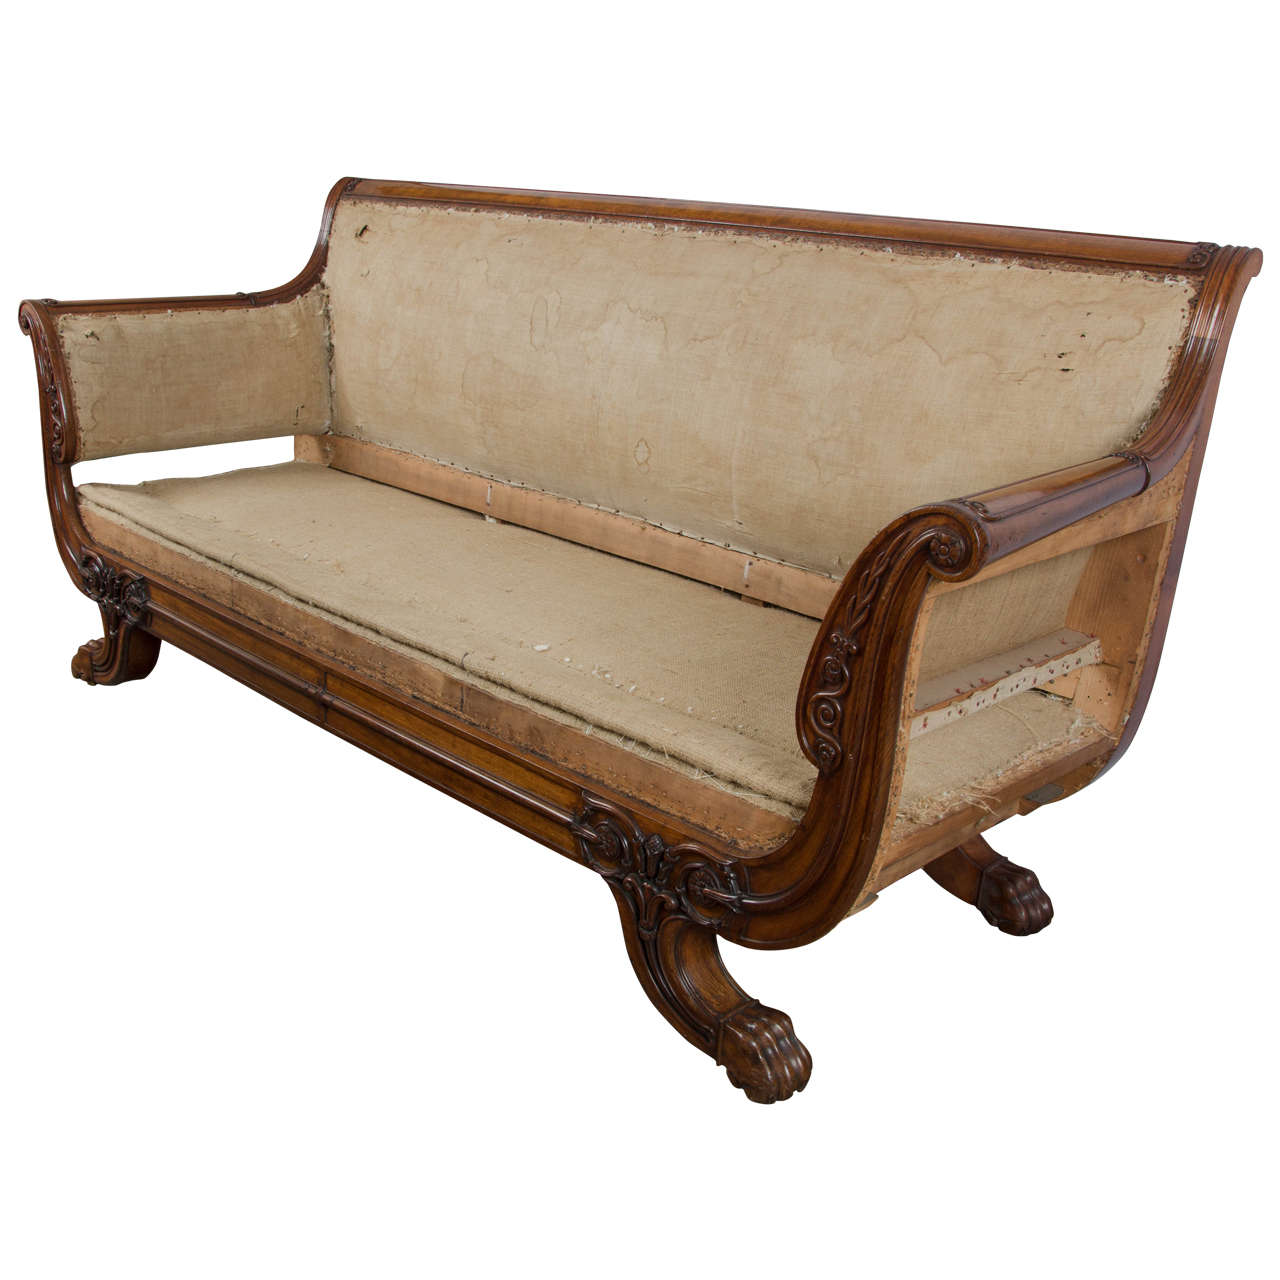 Early 19th Century Mahogany Regency Sofa